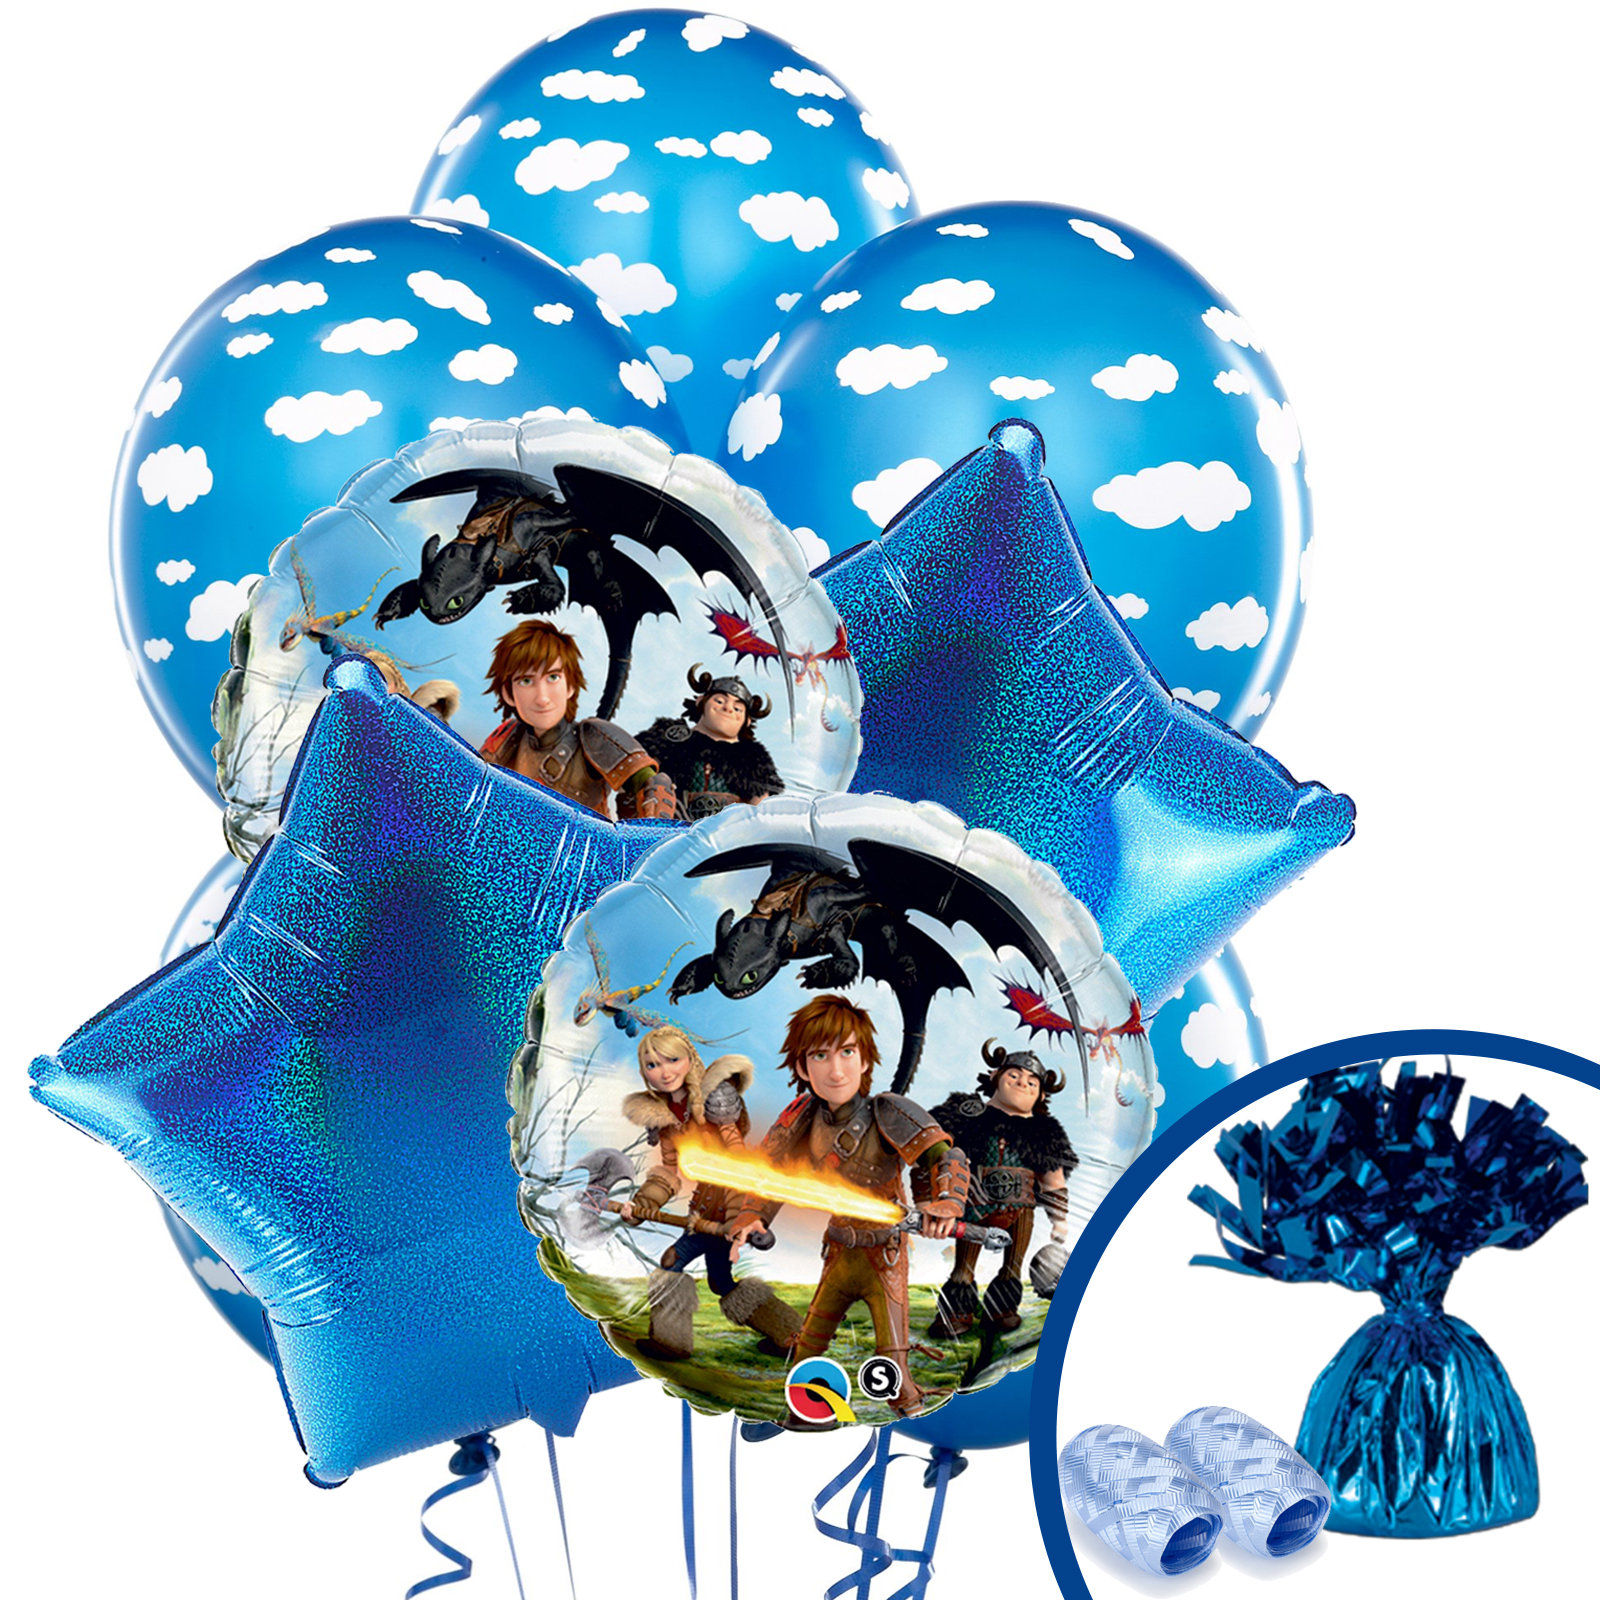 How To Train Your Dragon Balloon Kit (Each) BBBK129